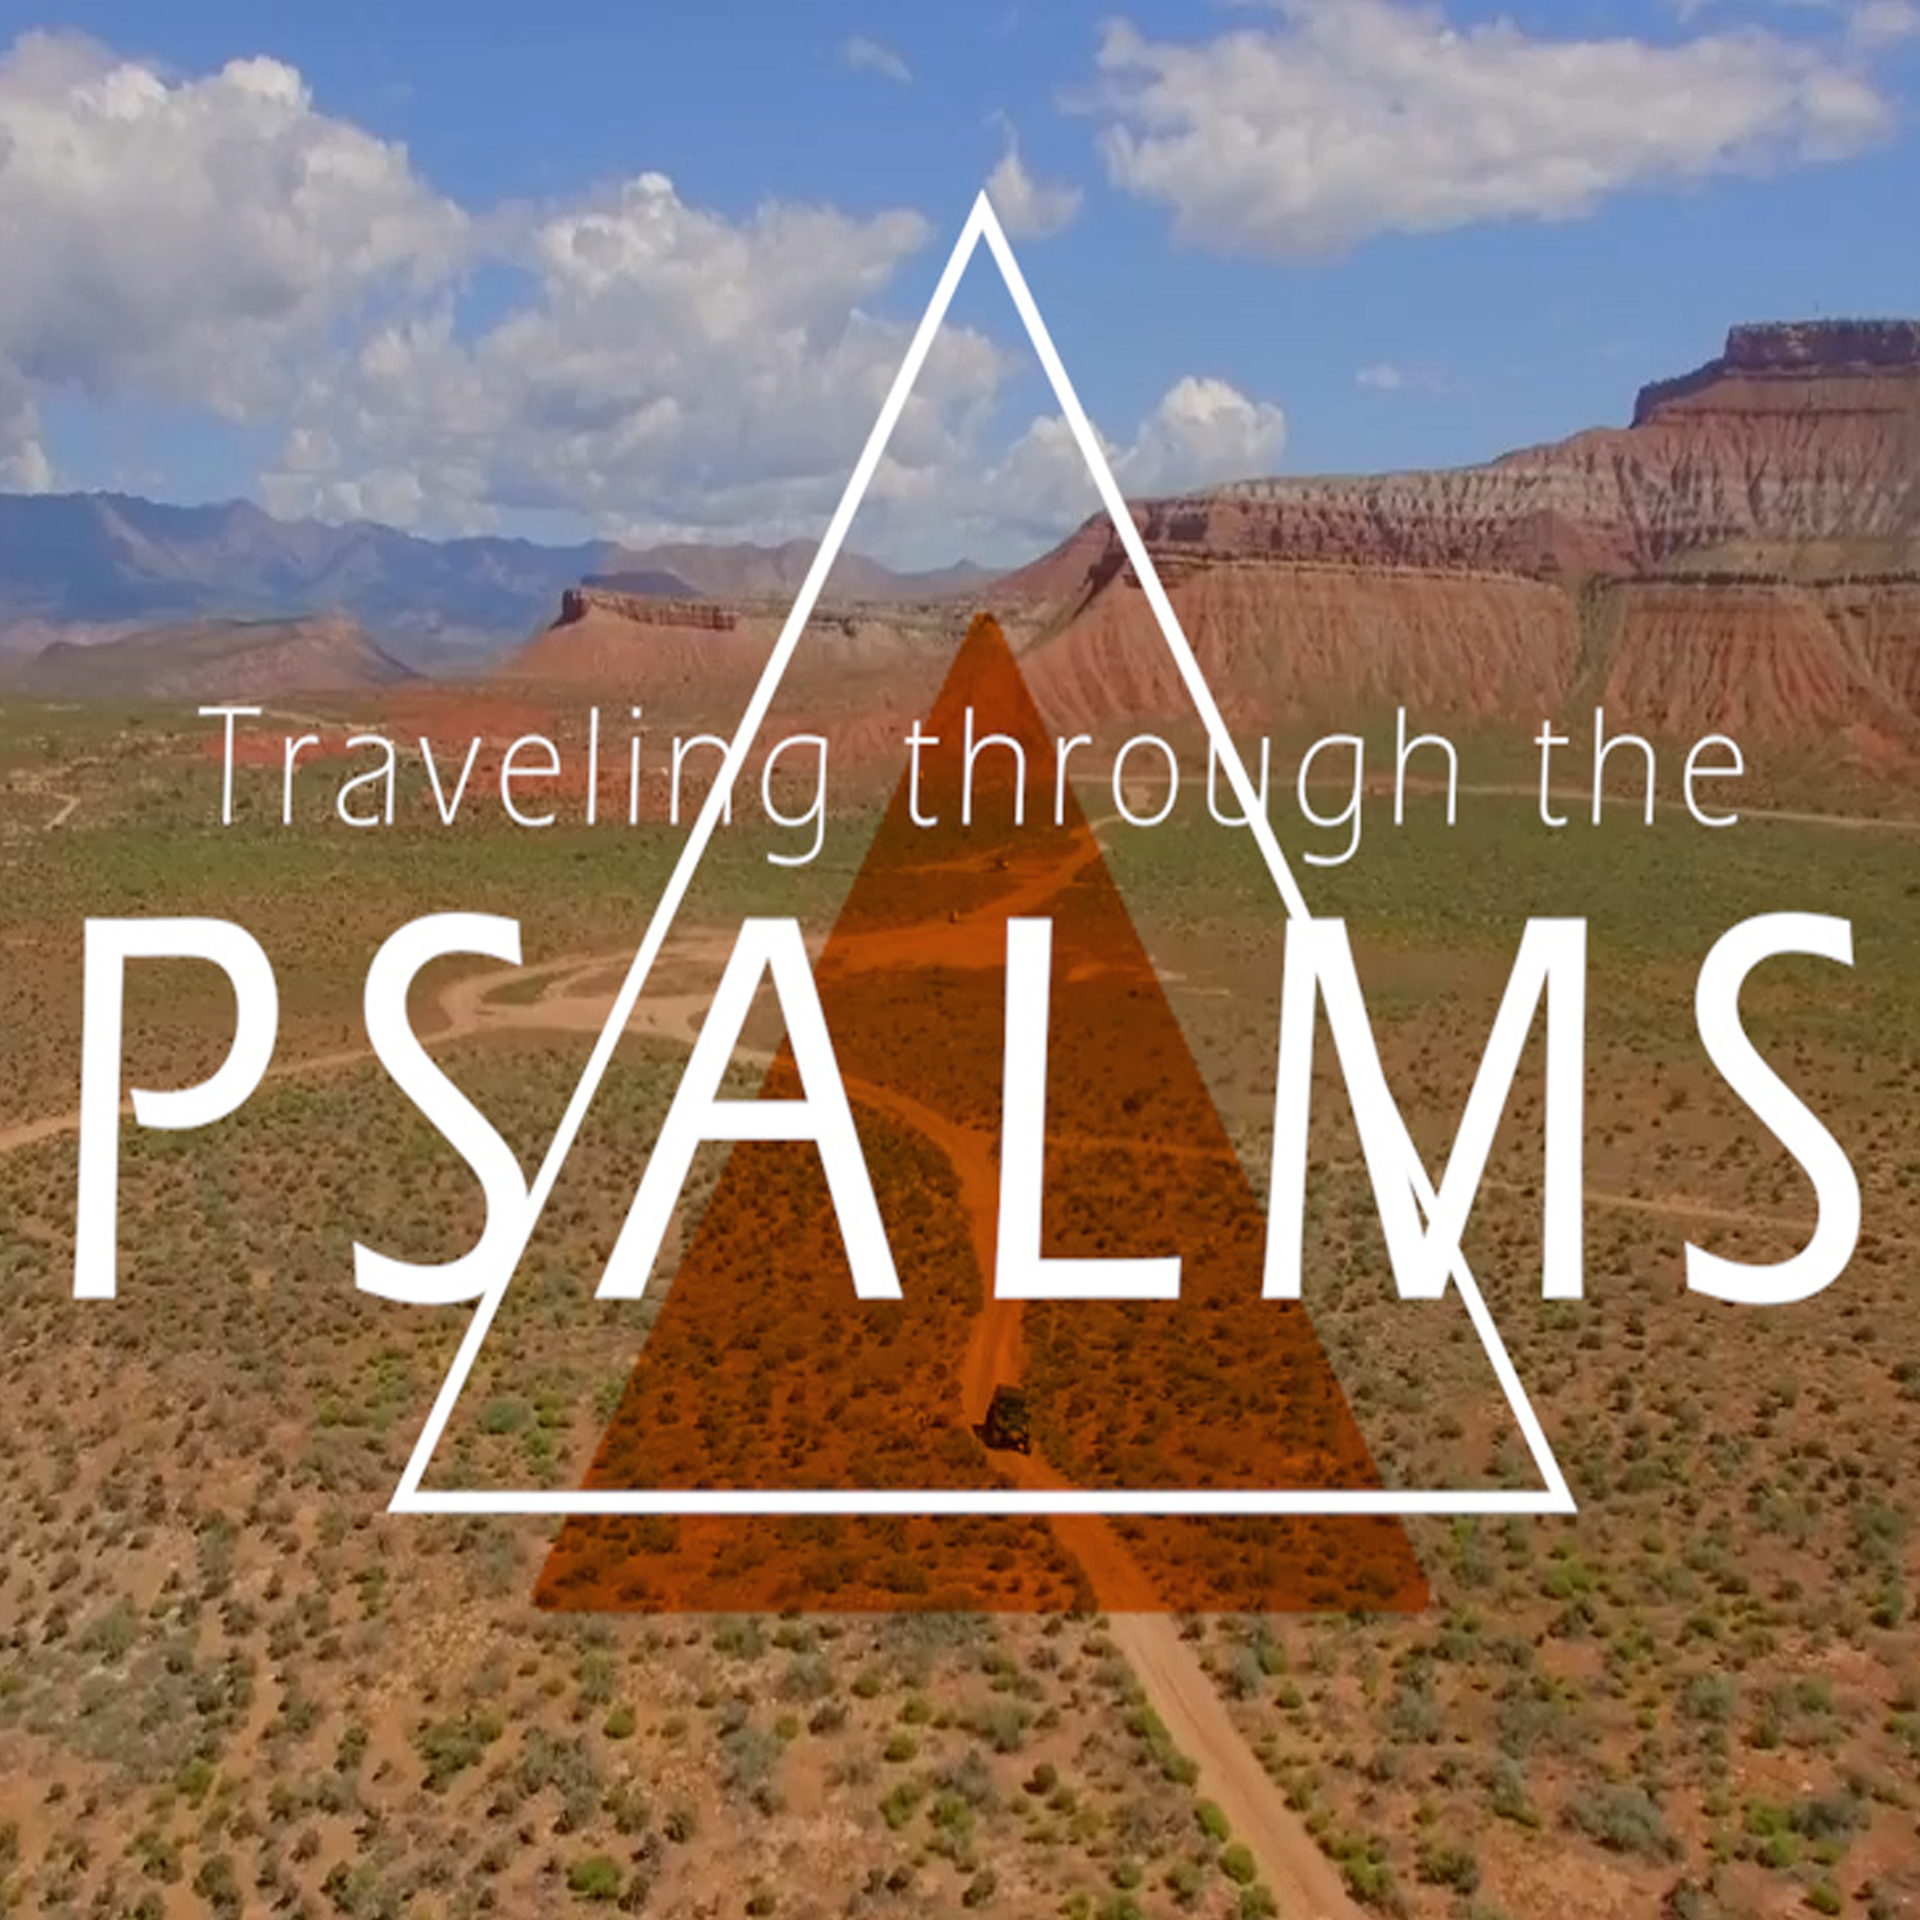 website_traveling_through_the_psalms.jpg